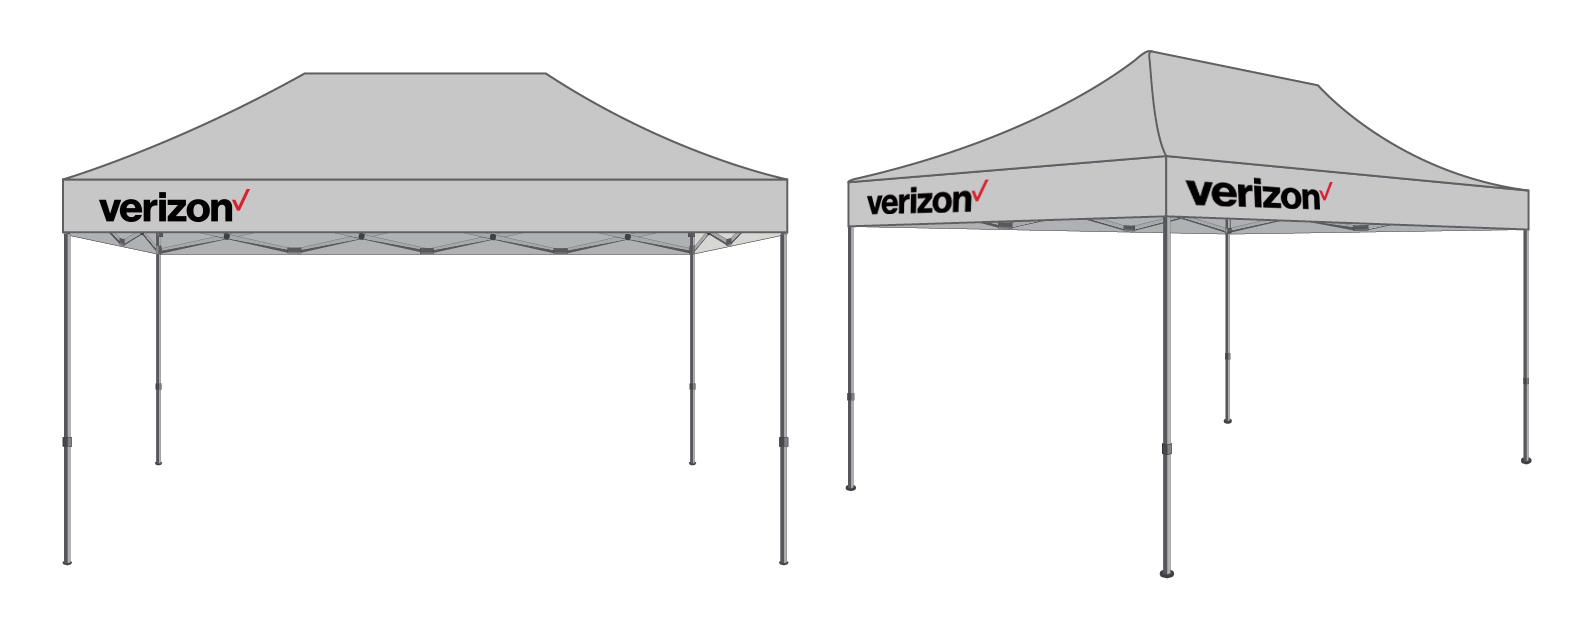 [FREE SHIPPING] 10x20ft Pop-Up Tent (Gray) Imprinted with White-Red Verizon Logo  sc 1 st  Above All Advertising Inc. & FREE SHIPPING] 10x20ft Pop-Up Tent (Gray) Imprinted with White-Red ...